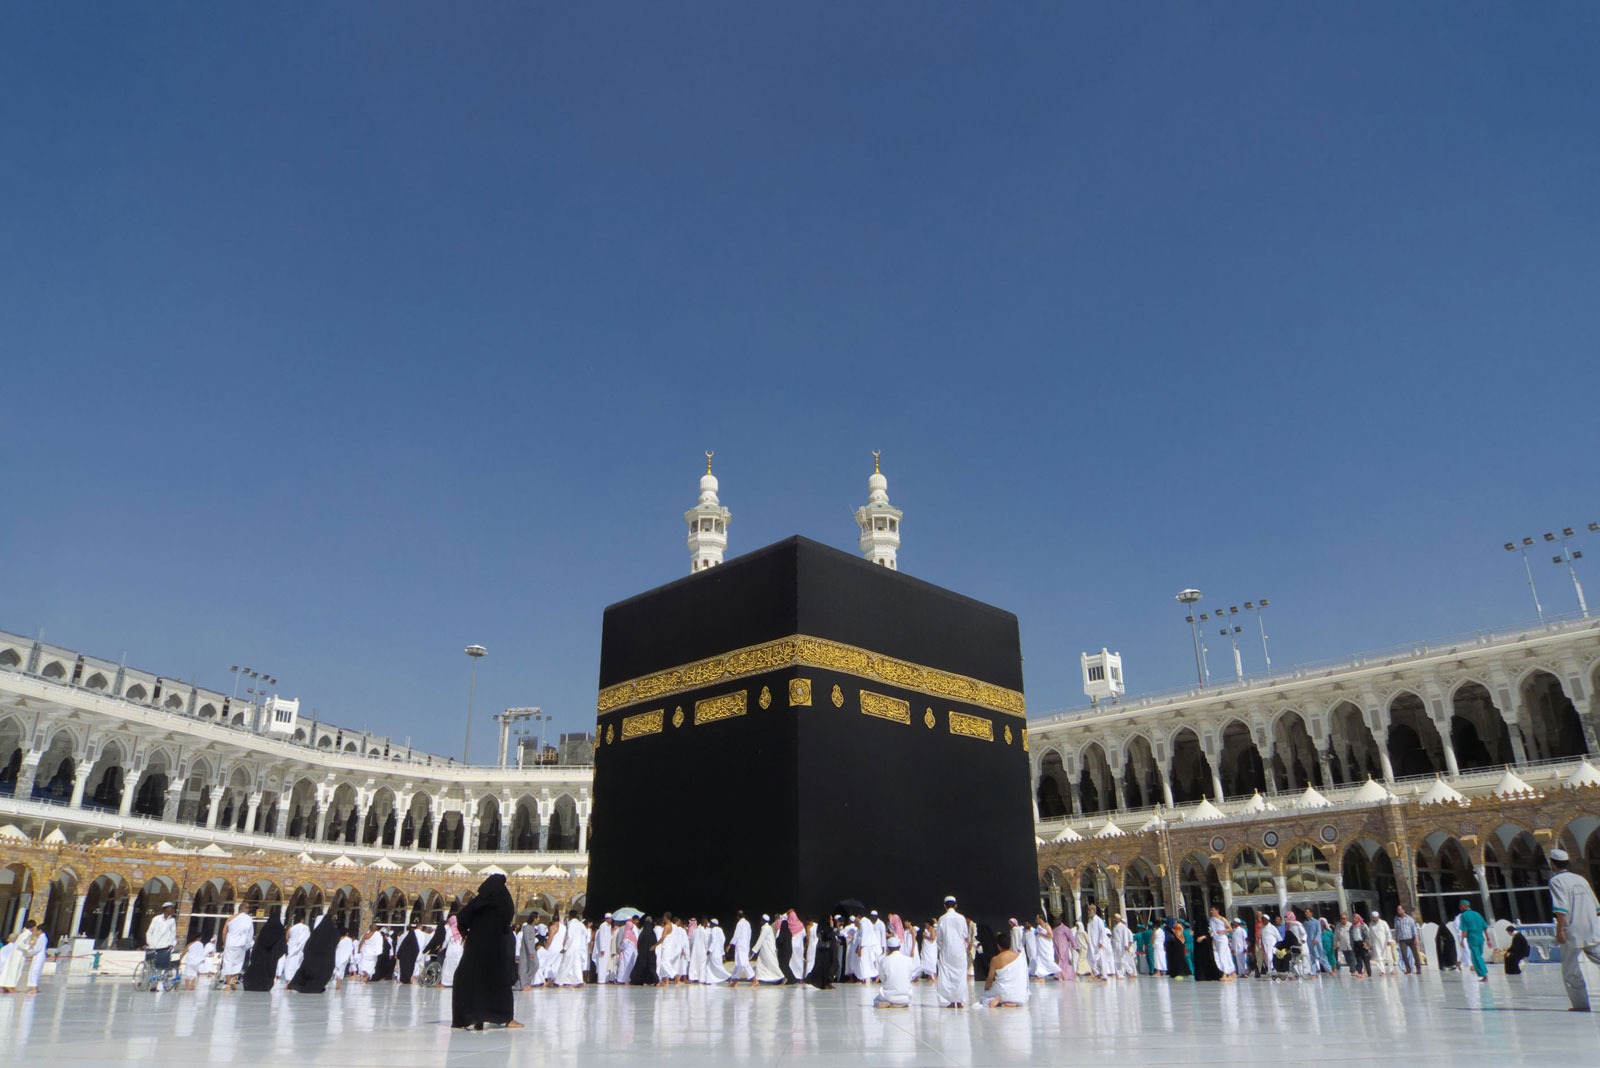 About Islam: Kaabah